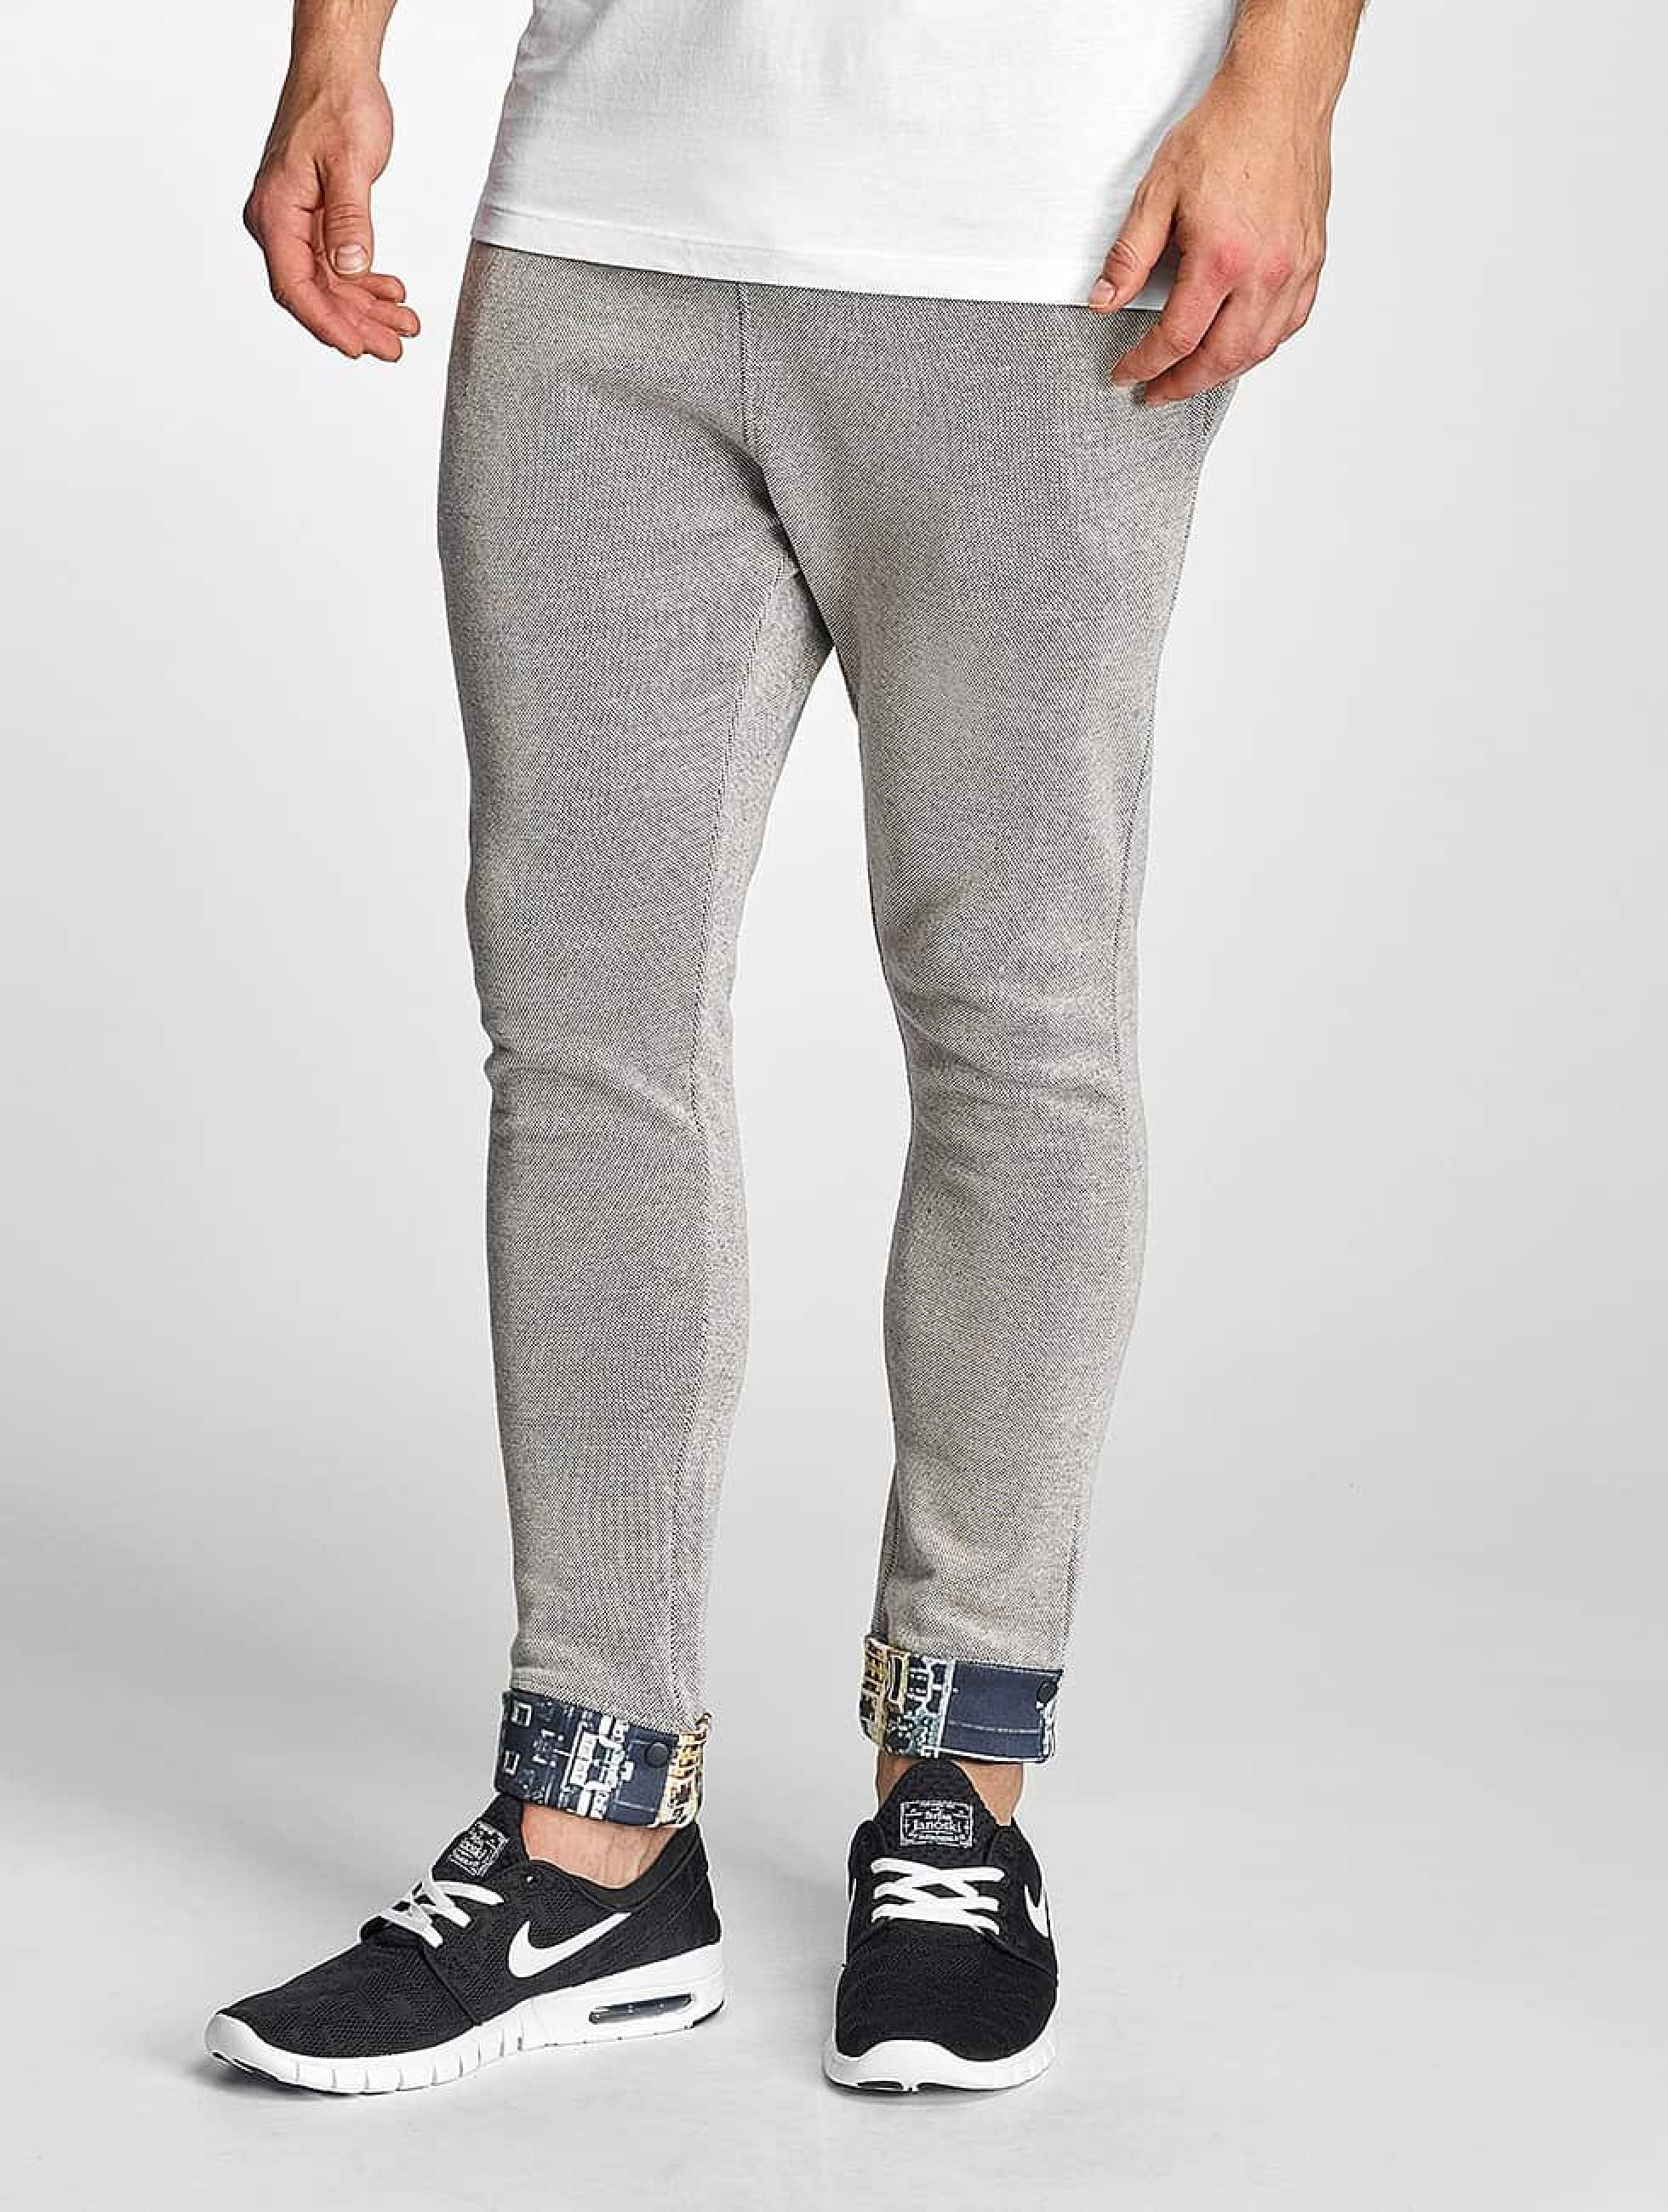 Just Rhyse / Sweat Pant Westport in grey XL